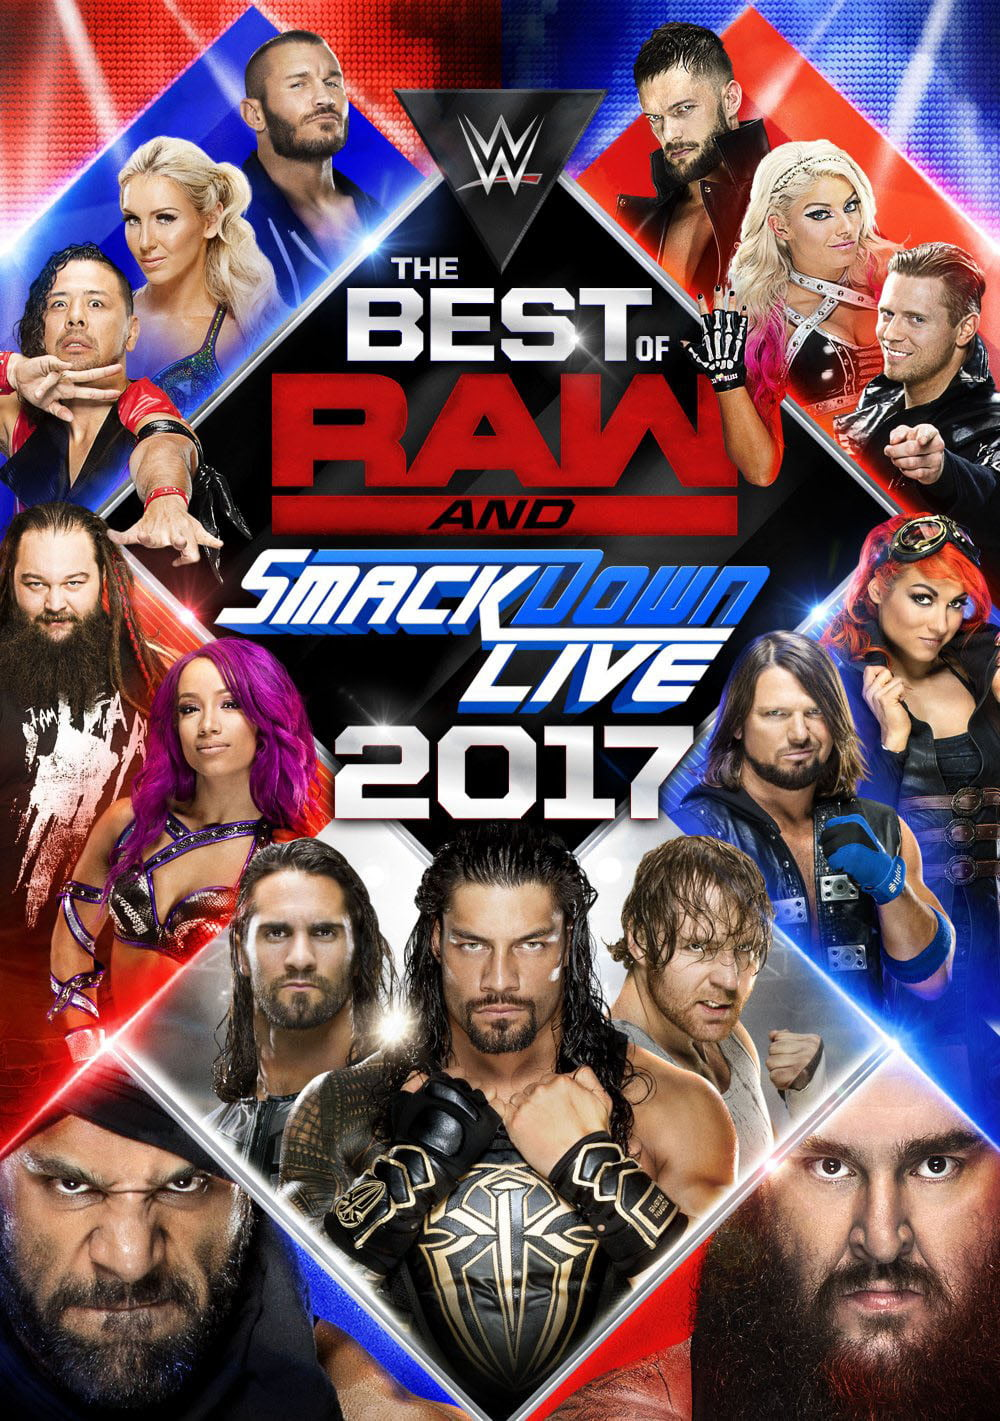 WWE: The Best of Raw and SmackDown Live 2017 (DVD) by